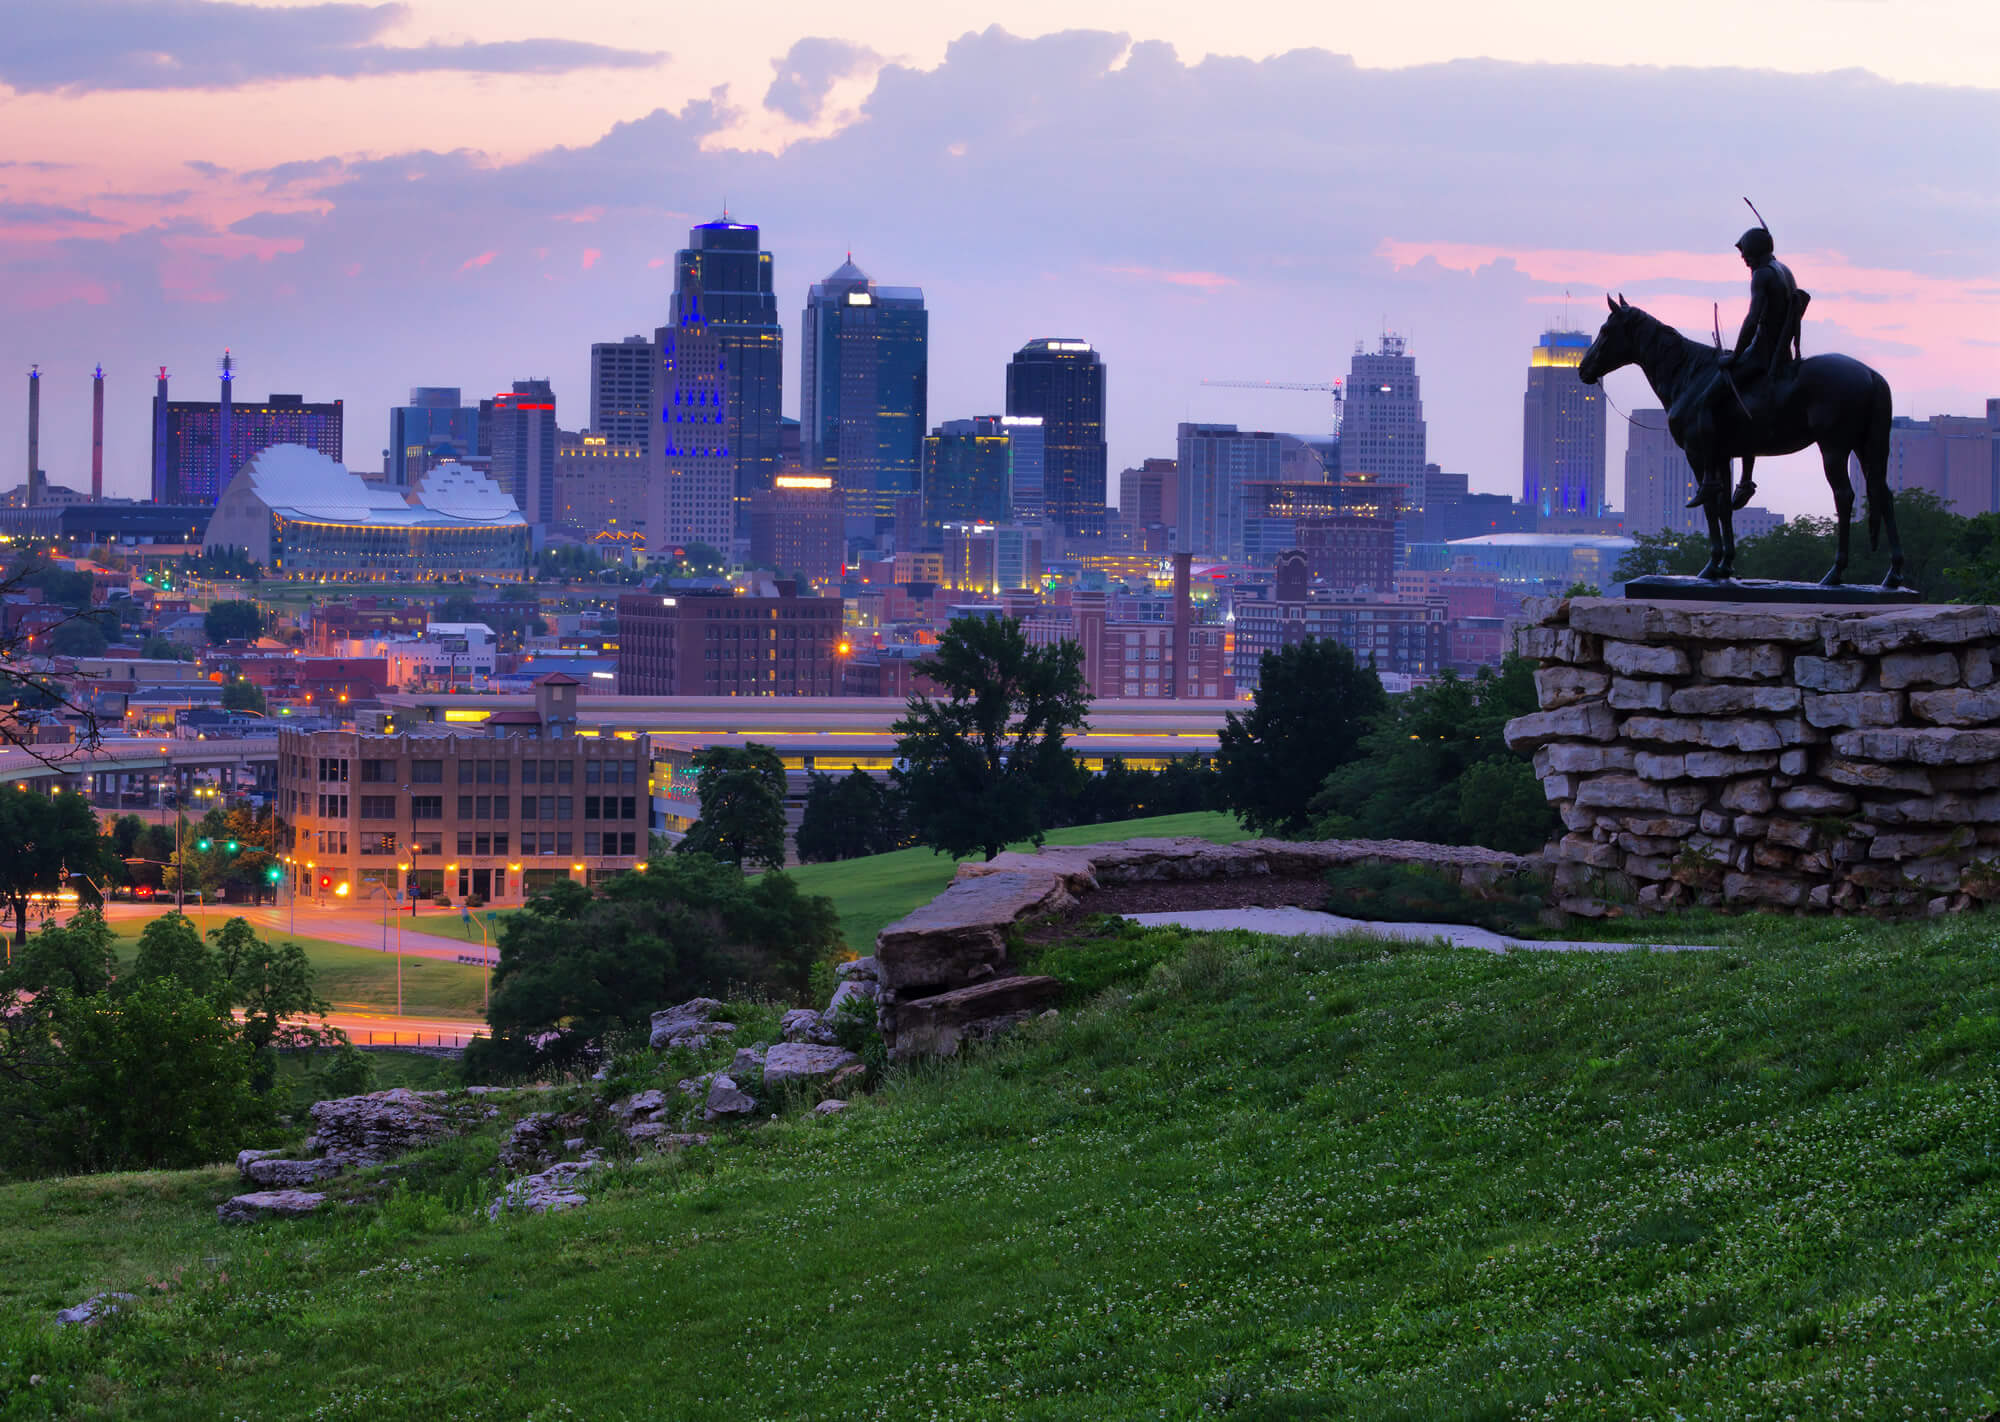 View of Kansas City, Missouri skylines